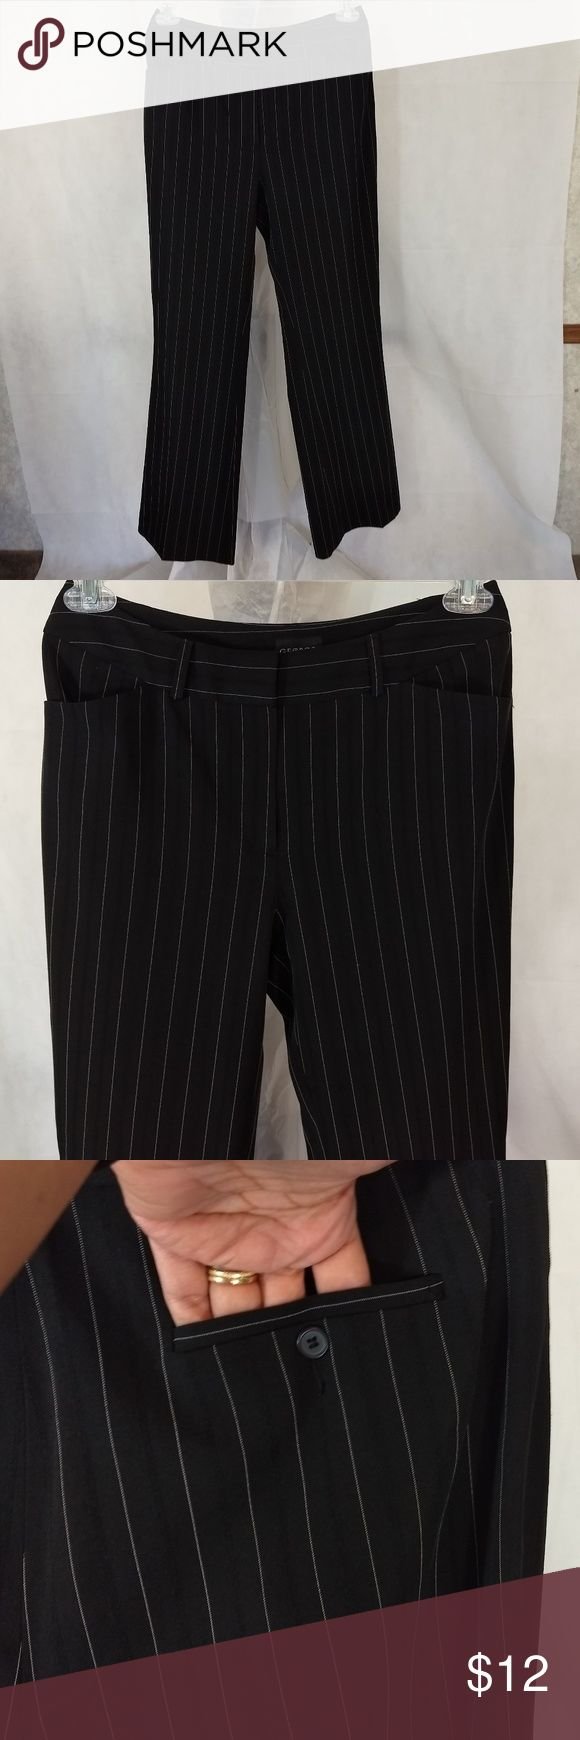 GEORGE Career Pants Women Size 8 Average Black Whi ITEM DESCRIPTION: George Stretch Wide Leg Career Dress Pants Women Size: 8 Average Color: Black White Pattern: Pin Stripe Closure: Button, Hook and Zipper Fabric: 93% Polyester 6% Spandex 1% Rayon Made in: Indonesia ITEM CONDITION:  Pre-owned...GREAT USED CONDITION! ITEM MEASUREMENTS (Laying flat): Waist:  15 in                    Hips: 20 in Inseam: 31.5 in Rise: 10 in George Pants Wide Leg